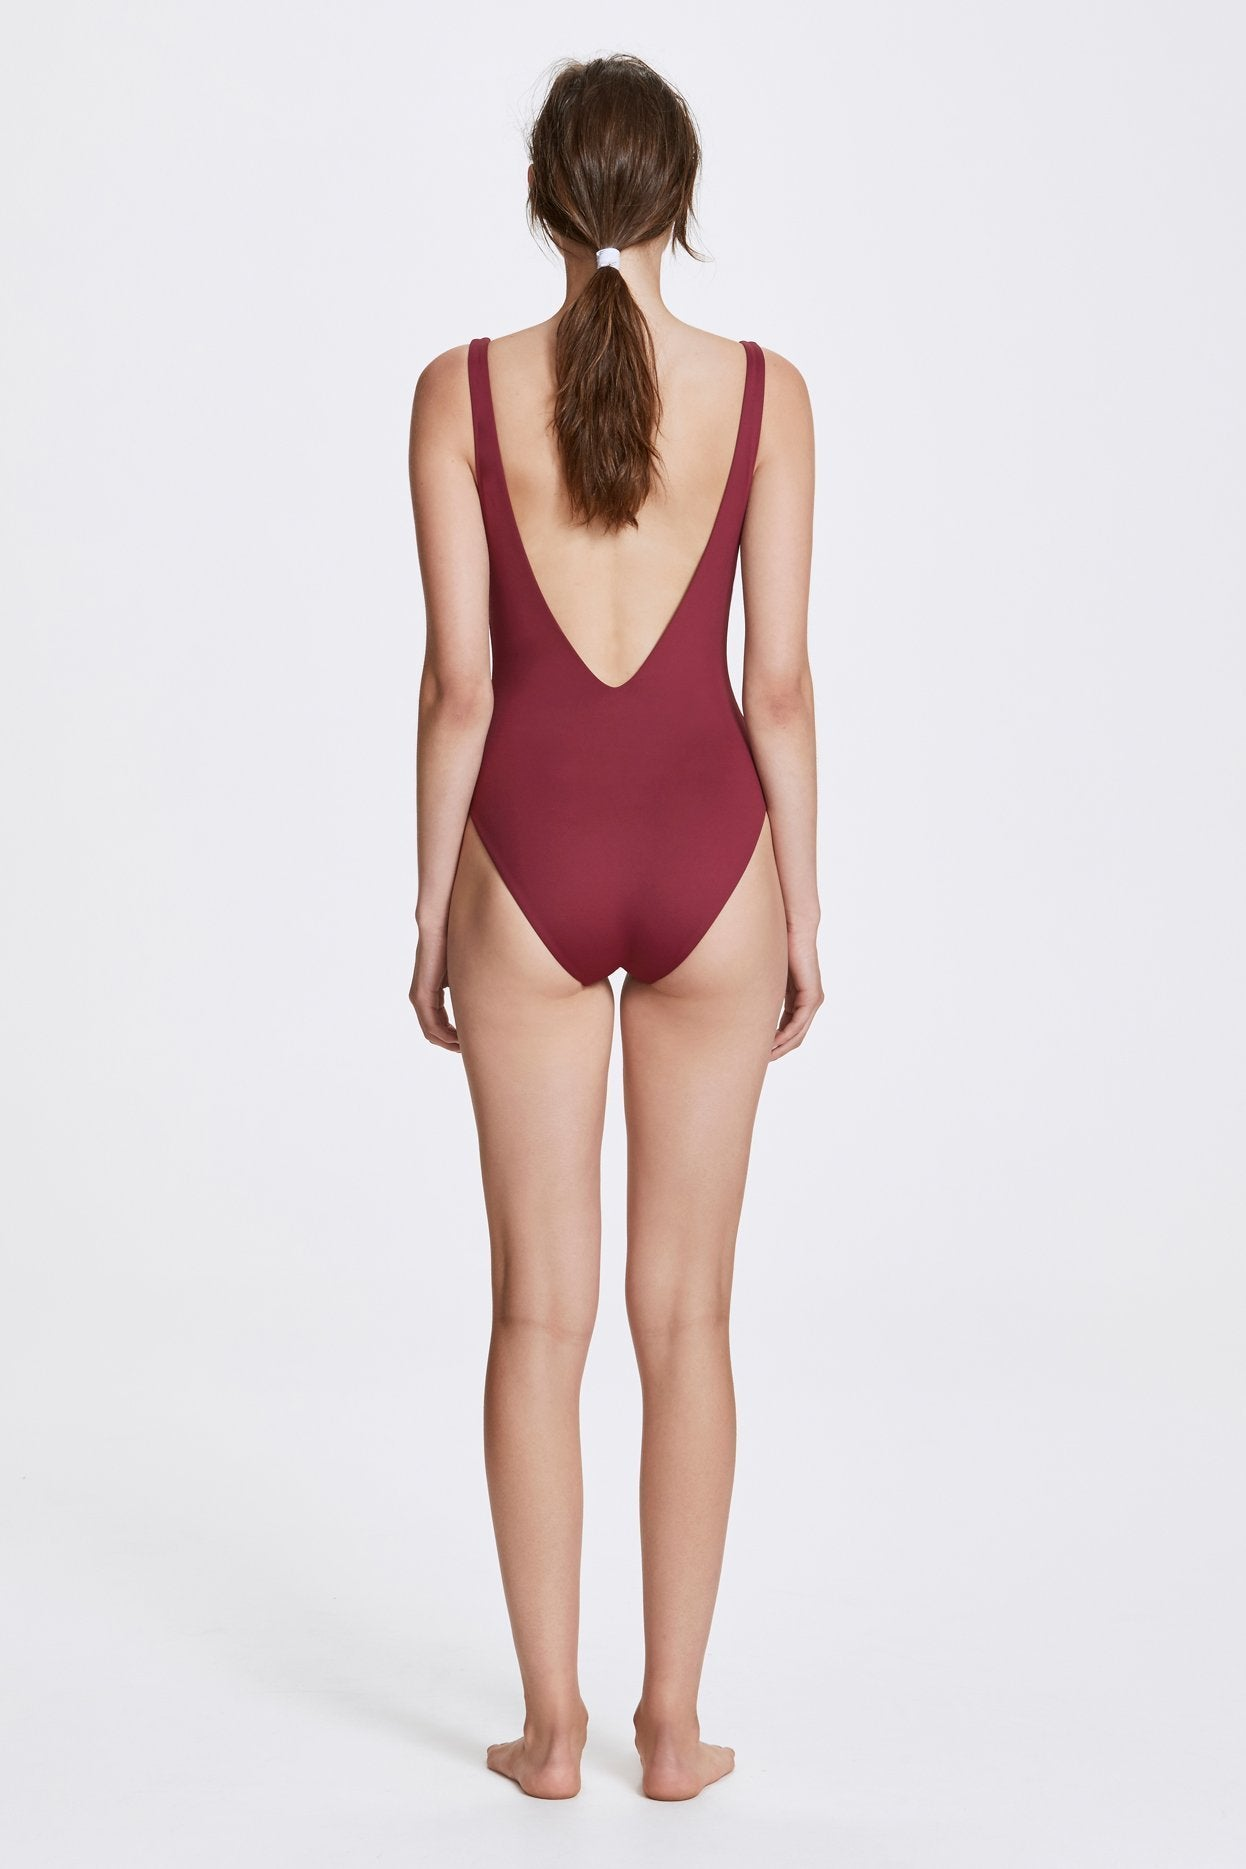 Her Line Ester Swimwear One Piece Rhubarb Red Back